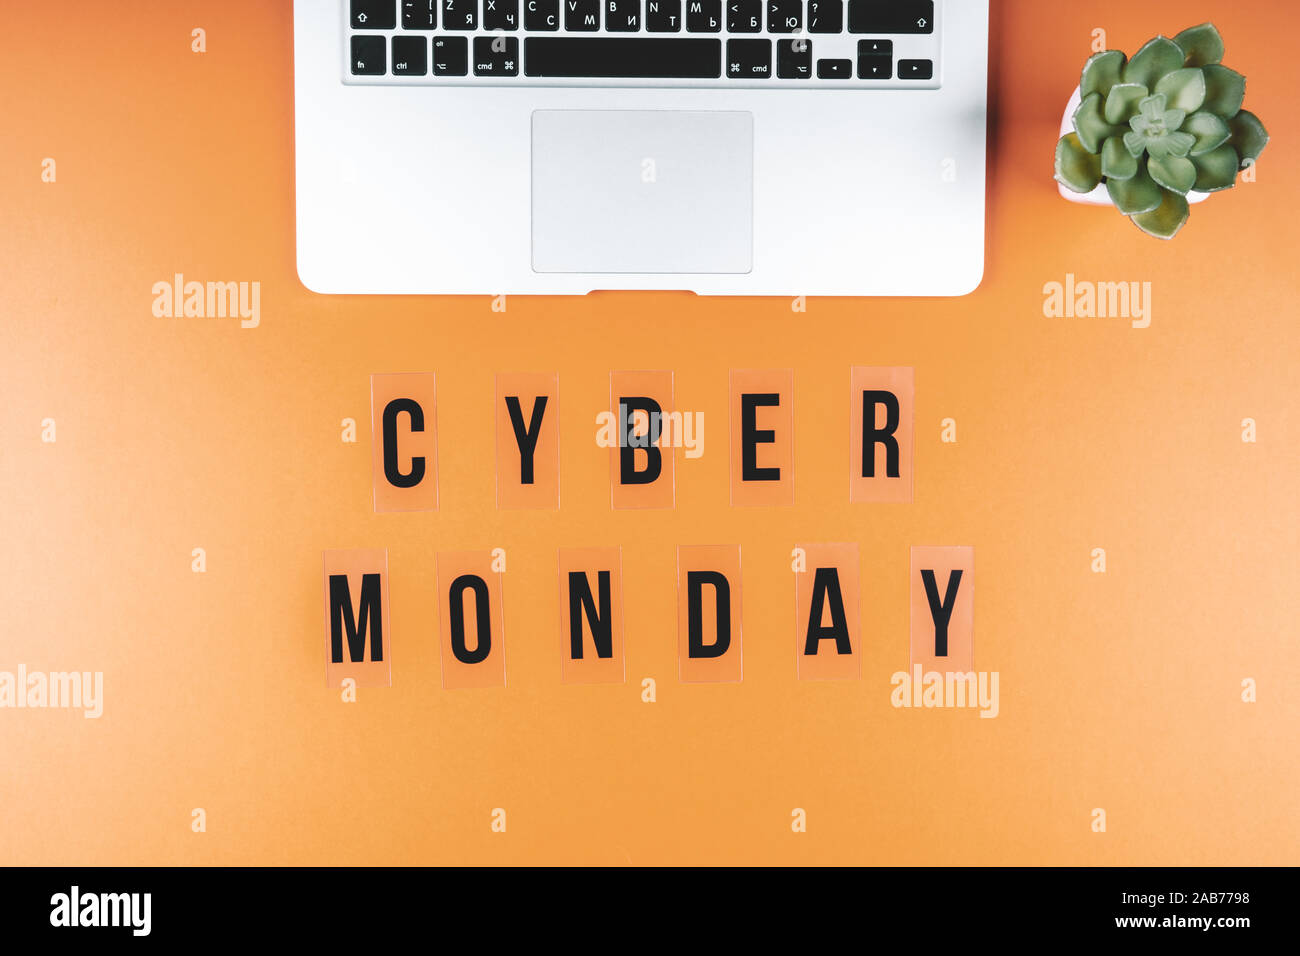 The Words Cyber Monday On A Bright Orange Background With A Laptop Stock Photo Alamy